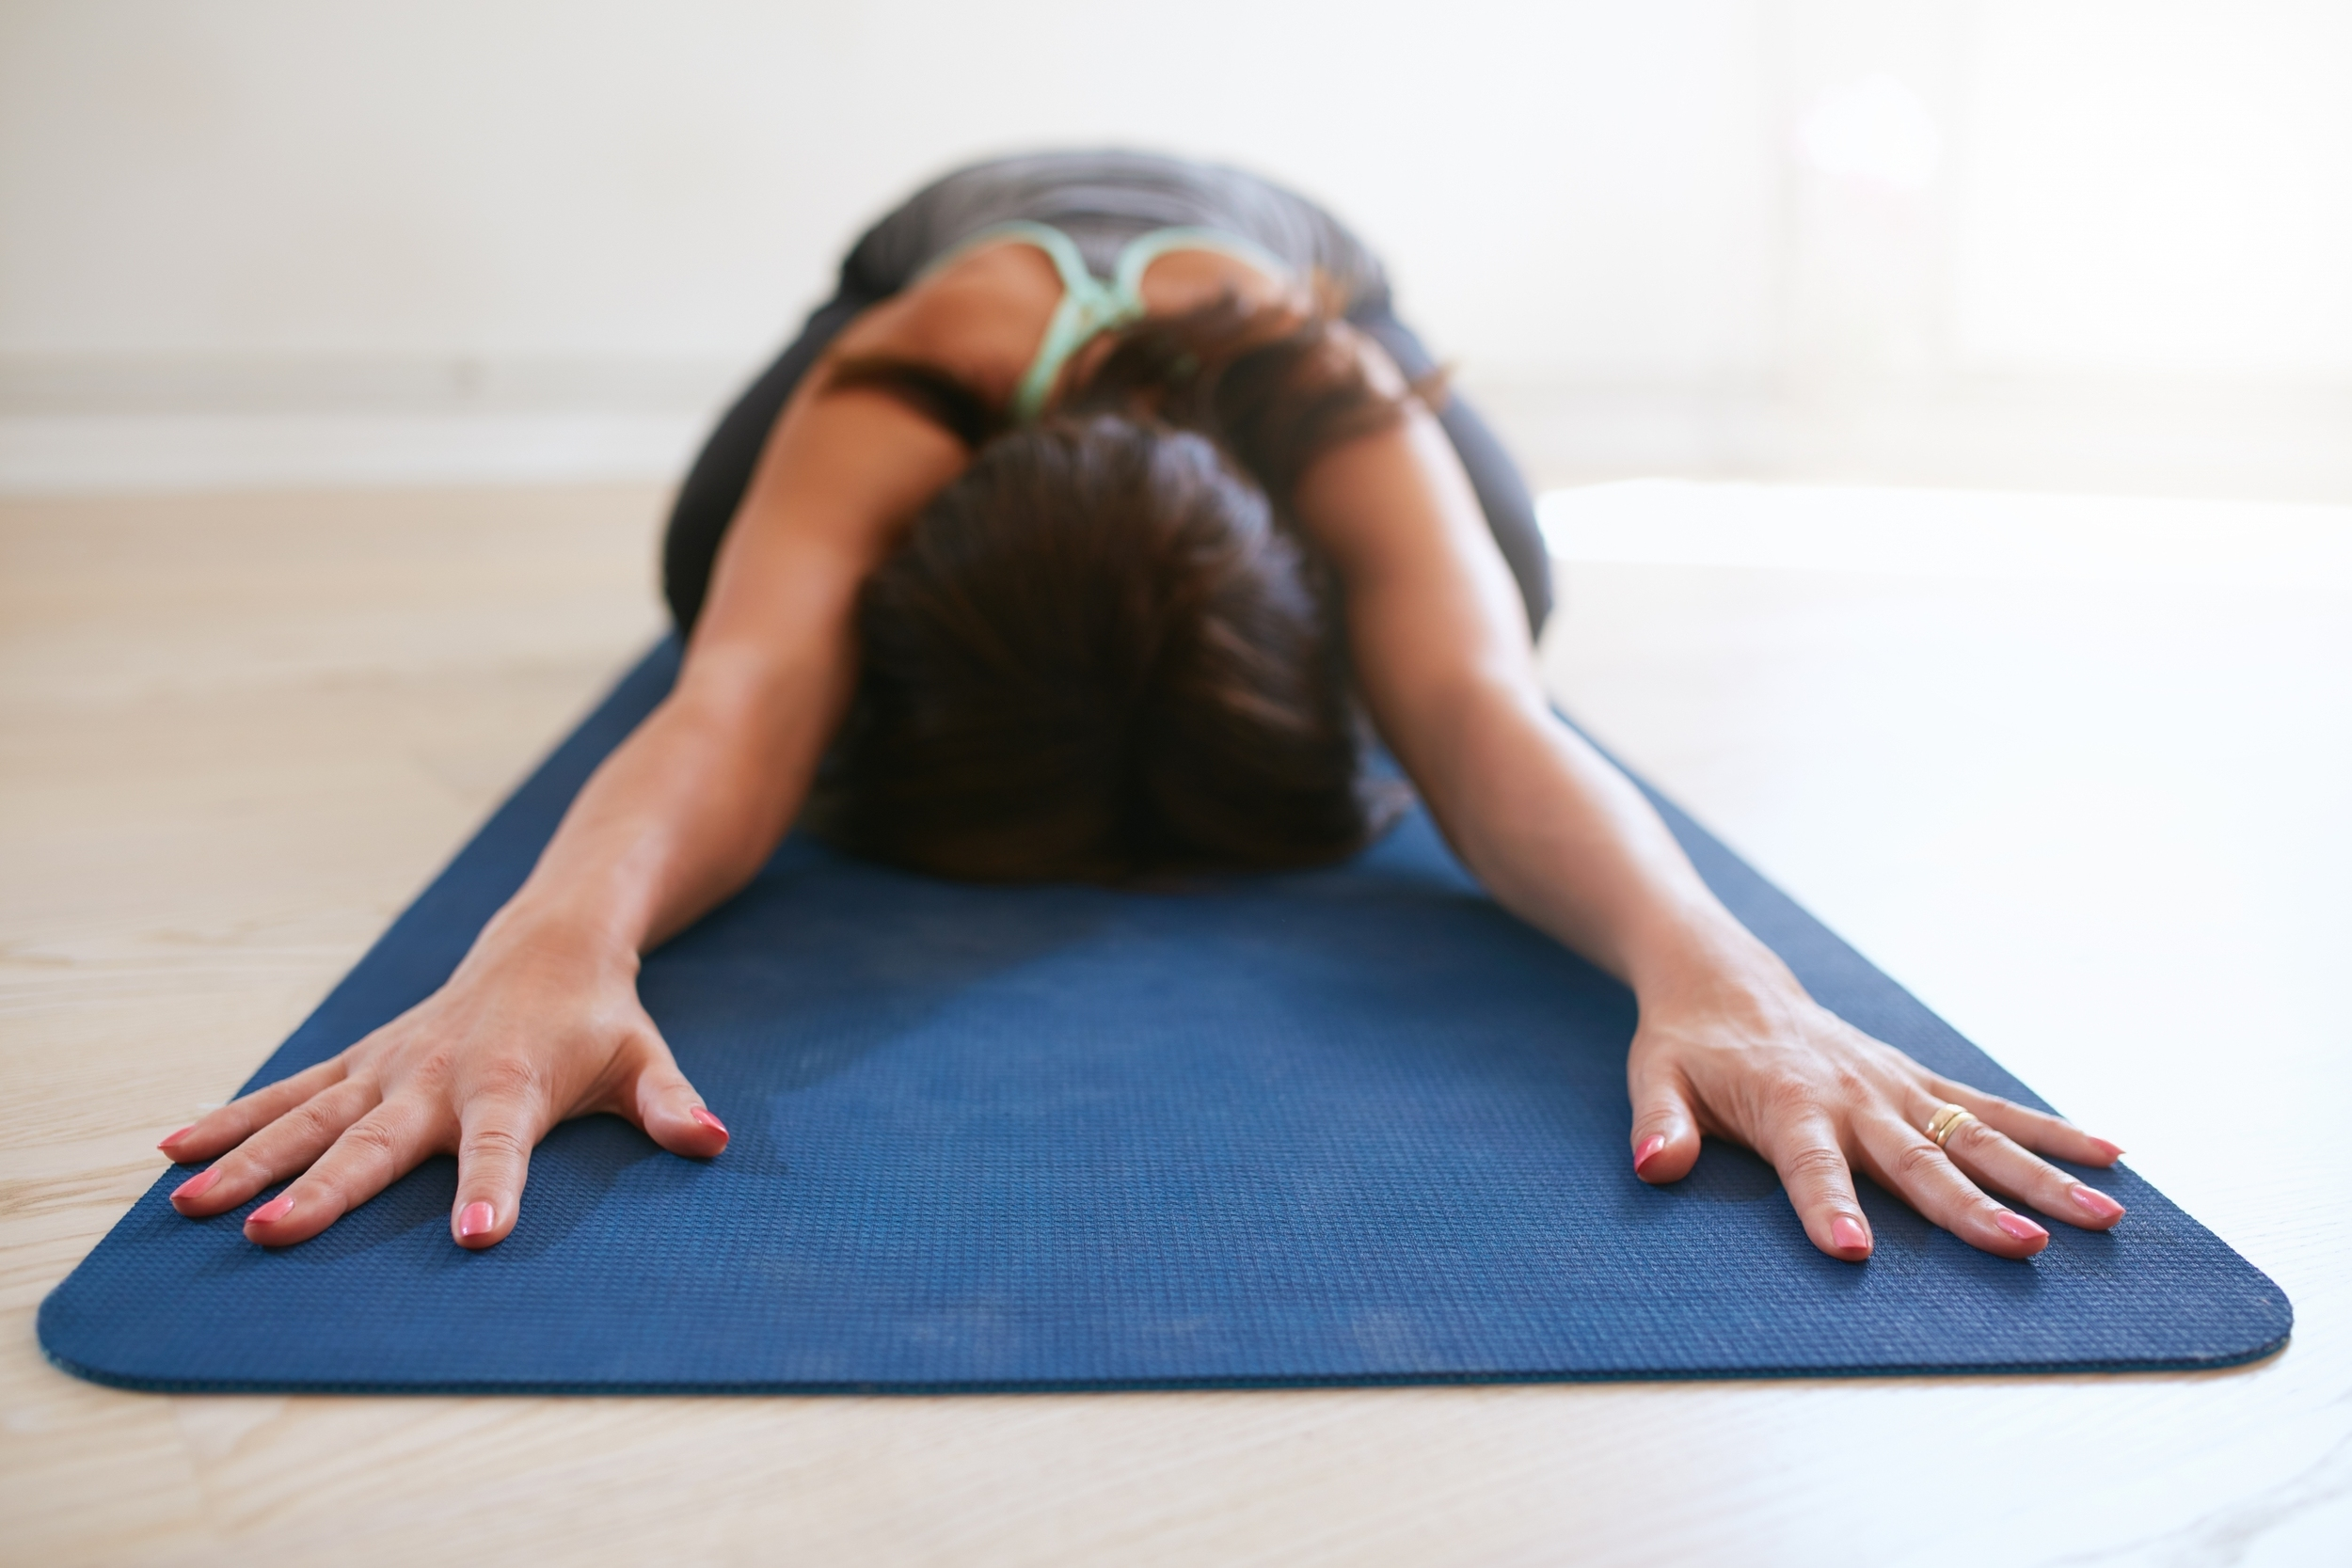 Woman-Doing-Yoga.jpg